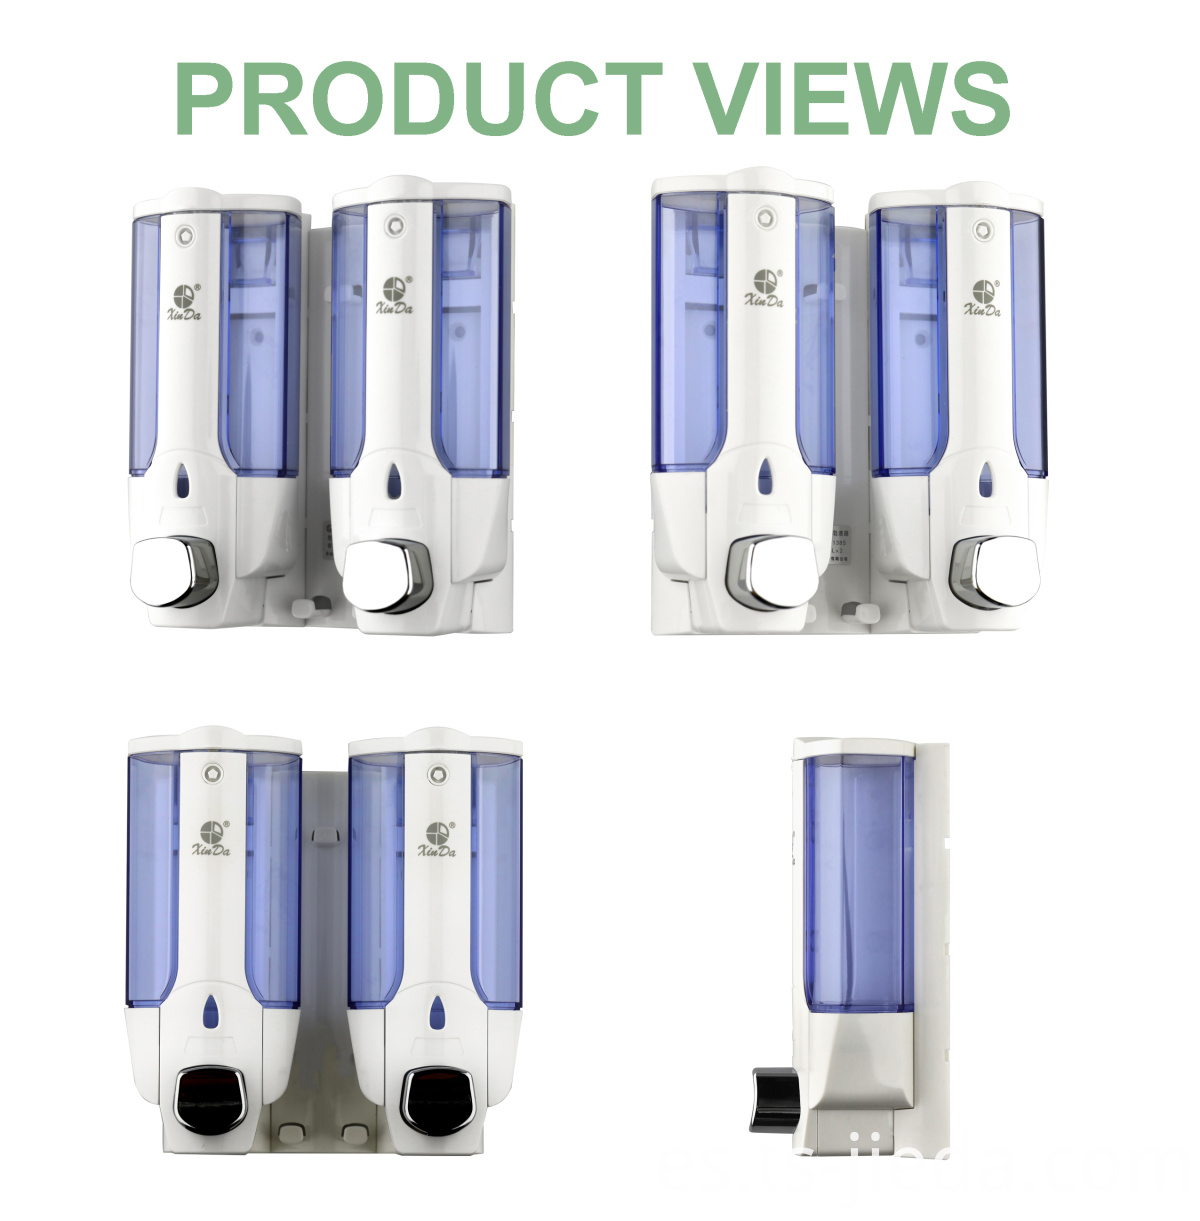 Pressure button type soap dispenser with visual function